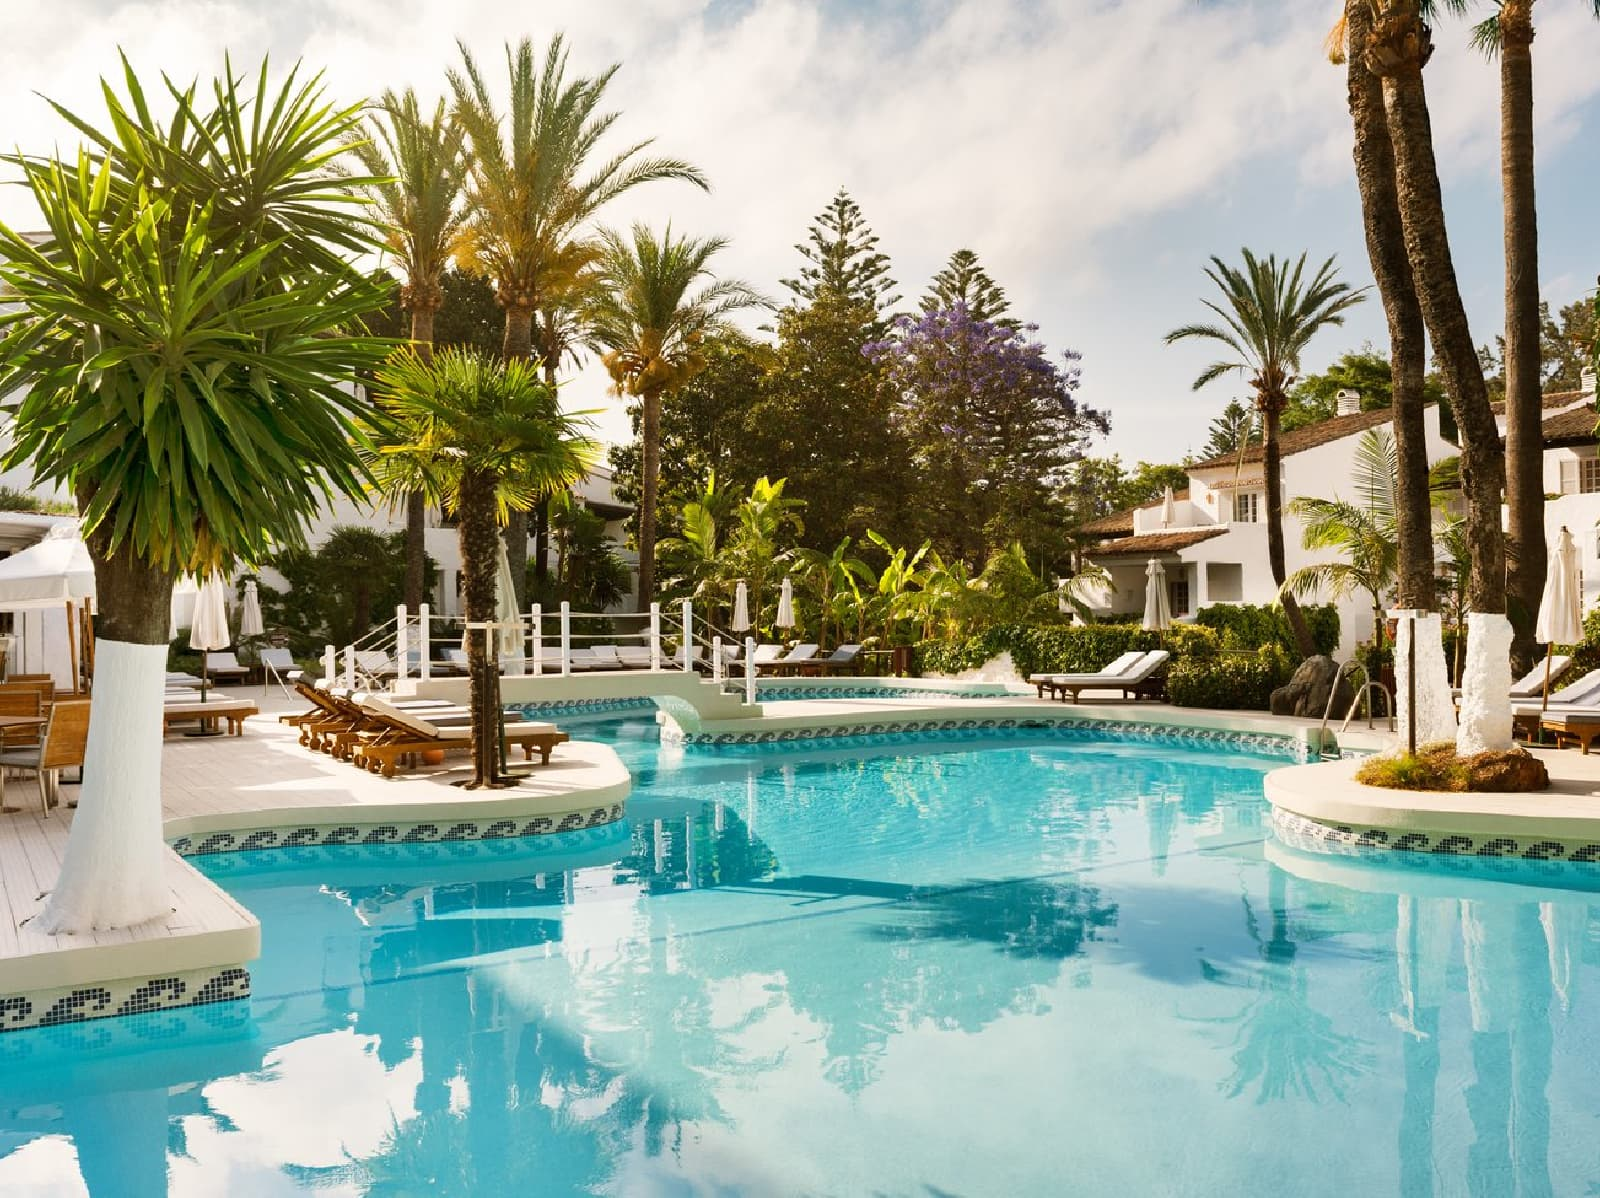 Puente Romano Beach Resort - one of the best tennis resorts for your tennis holidays in Marbella